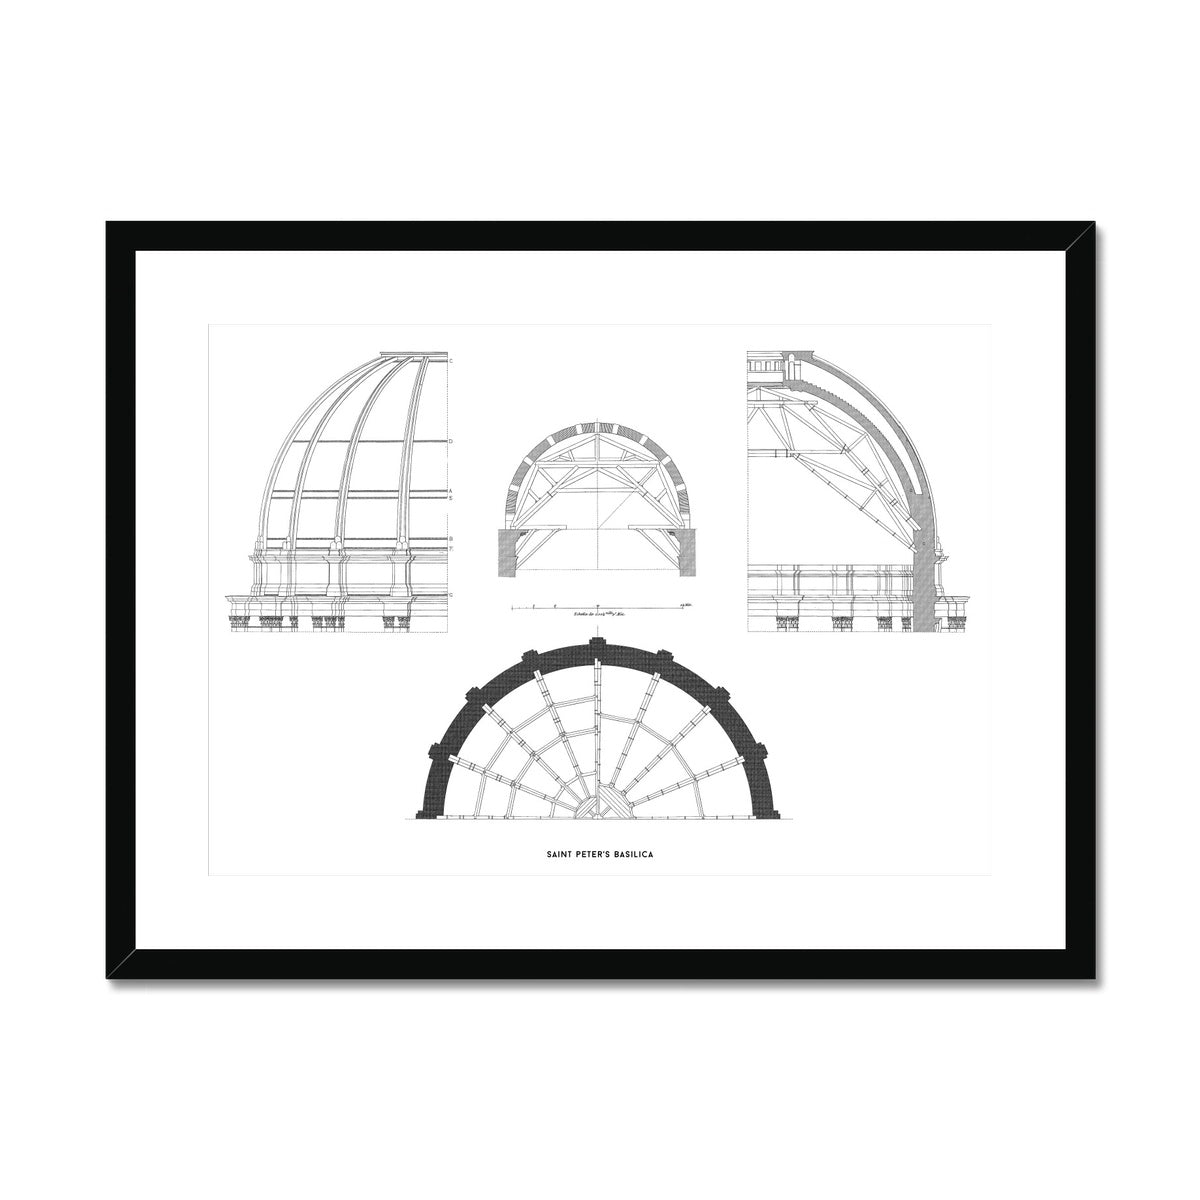 Saint Peter's Basilica - Dome Structure - White -  Framed & Mounted Print